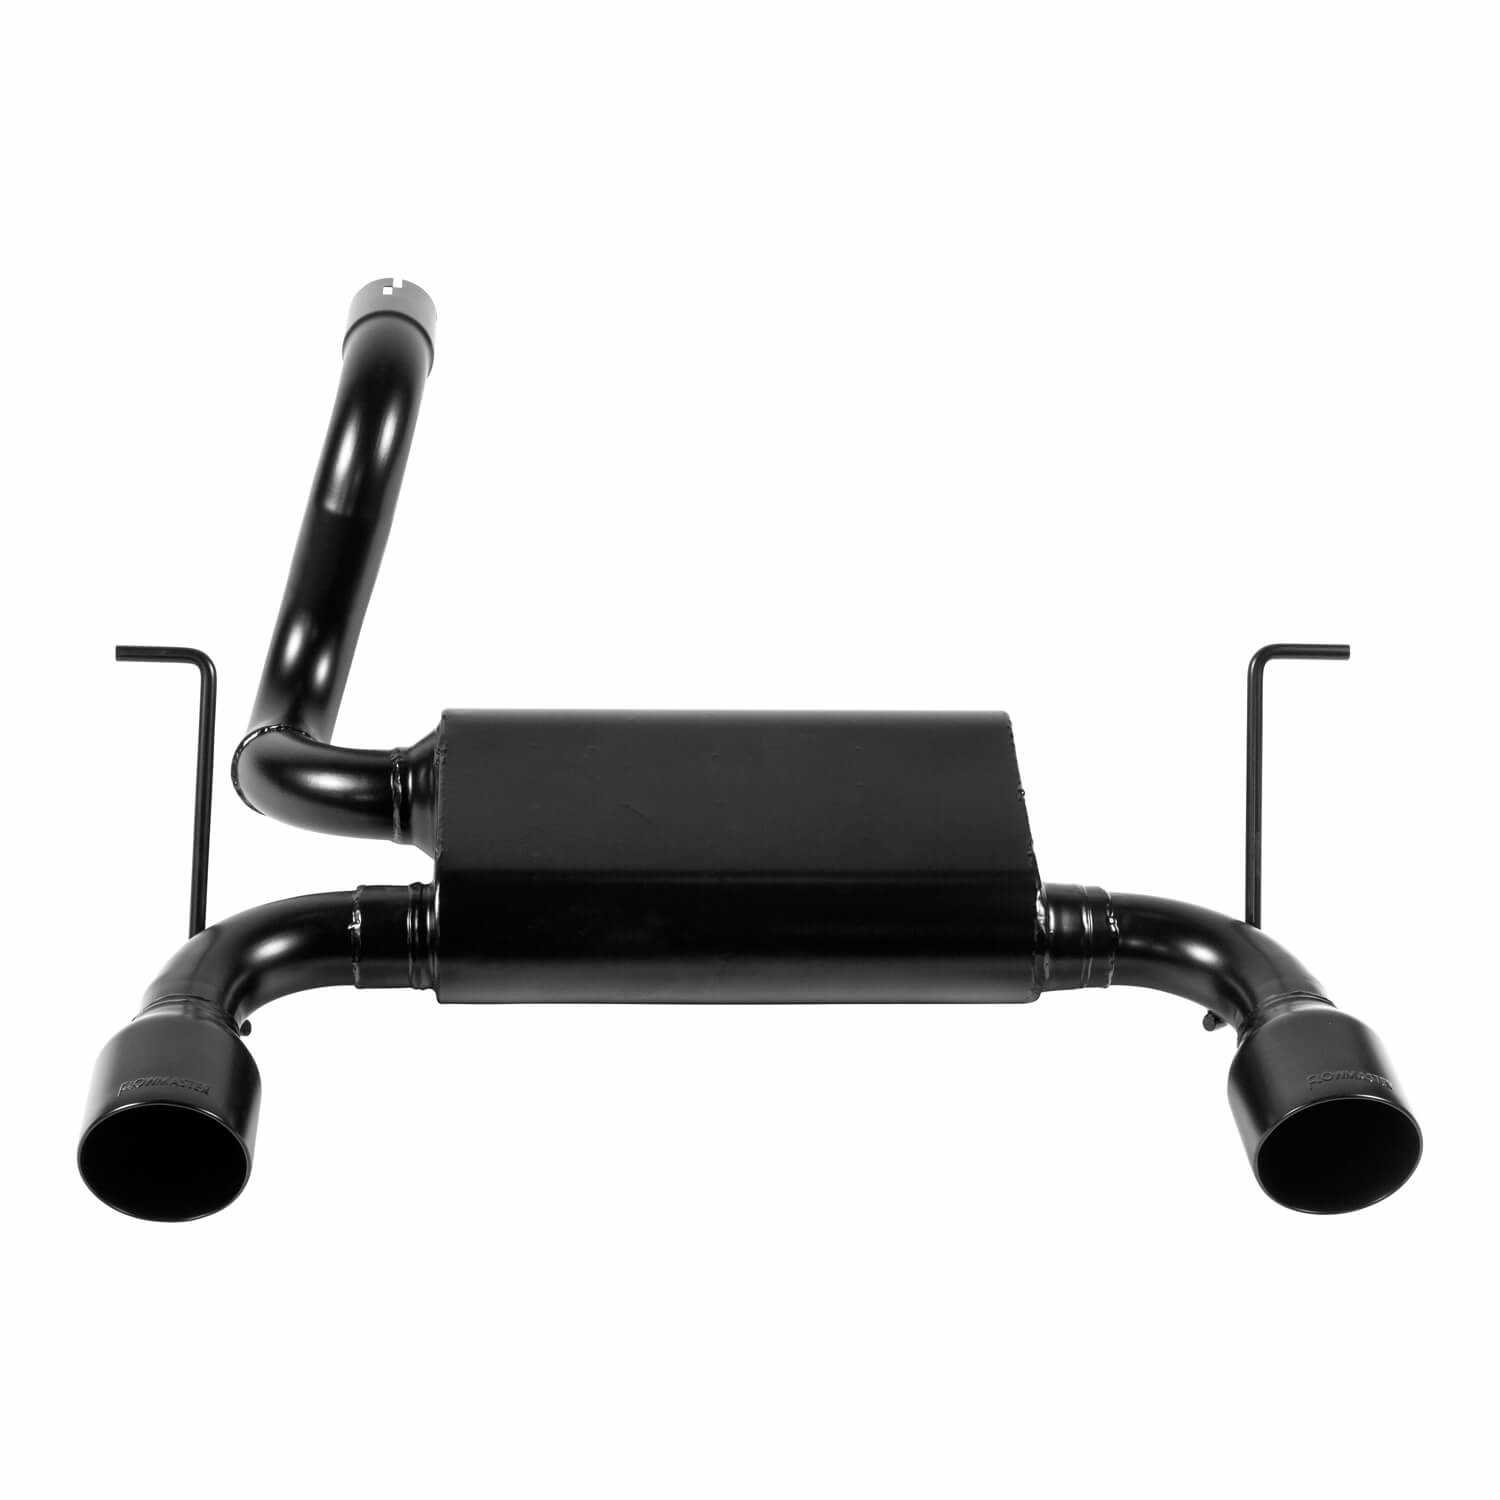 817804 Flowmaster Force II Axle Back Exhaust System